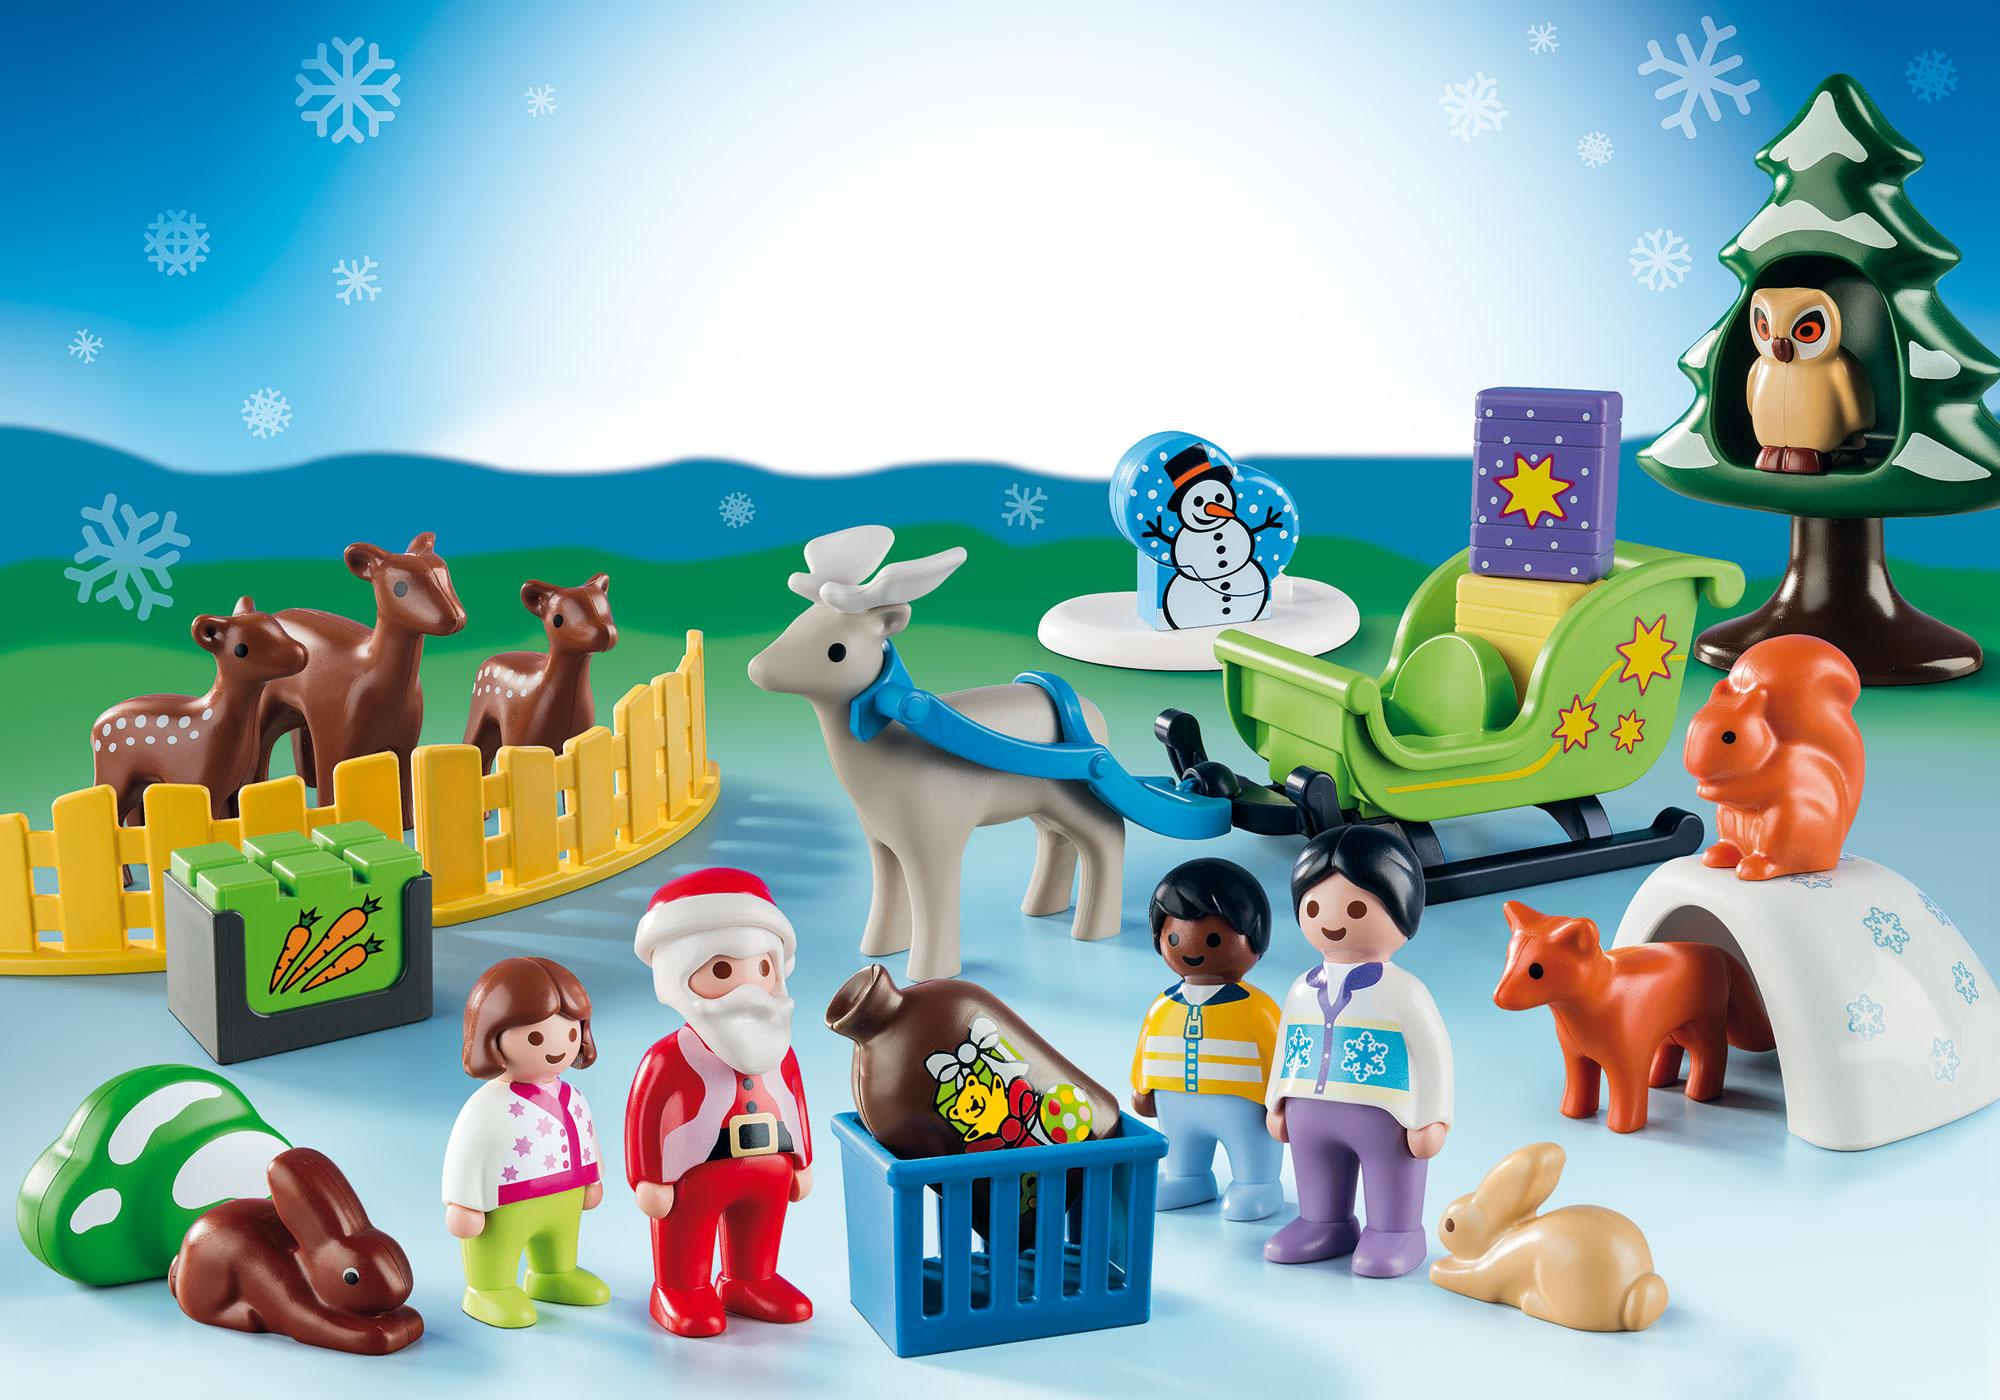 http://media.playmobil.com/i/playmobil/9391_product_extra1/1.2.3 Advent Calendar - Christmas in the Forest